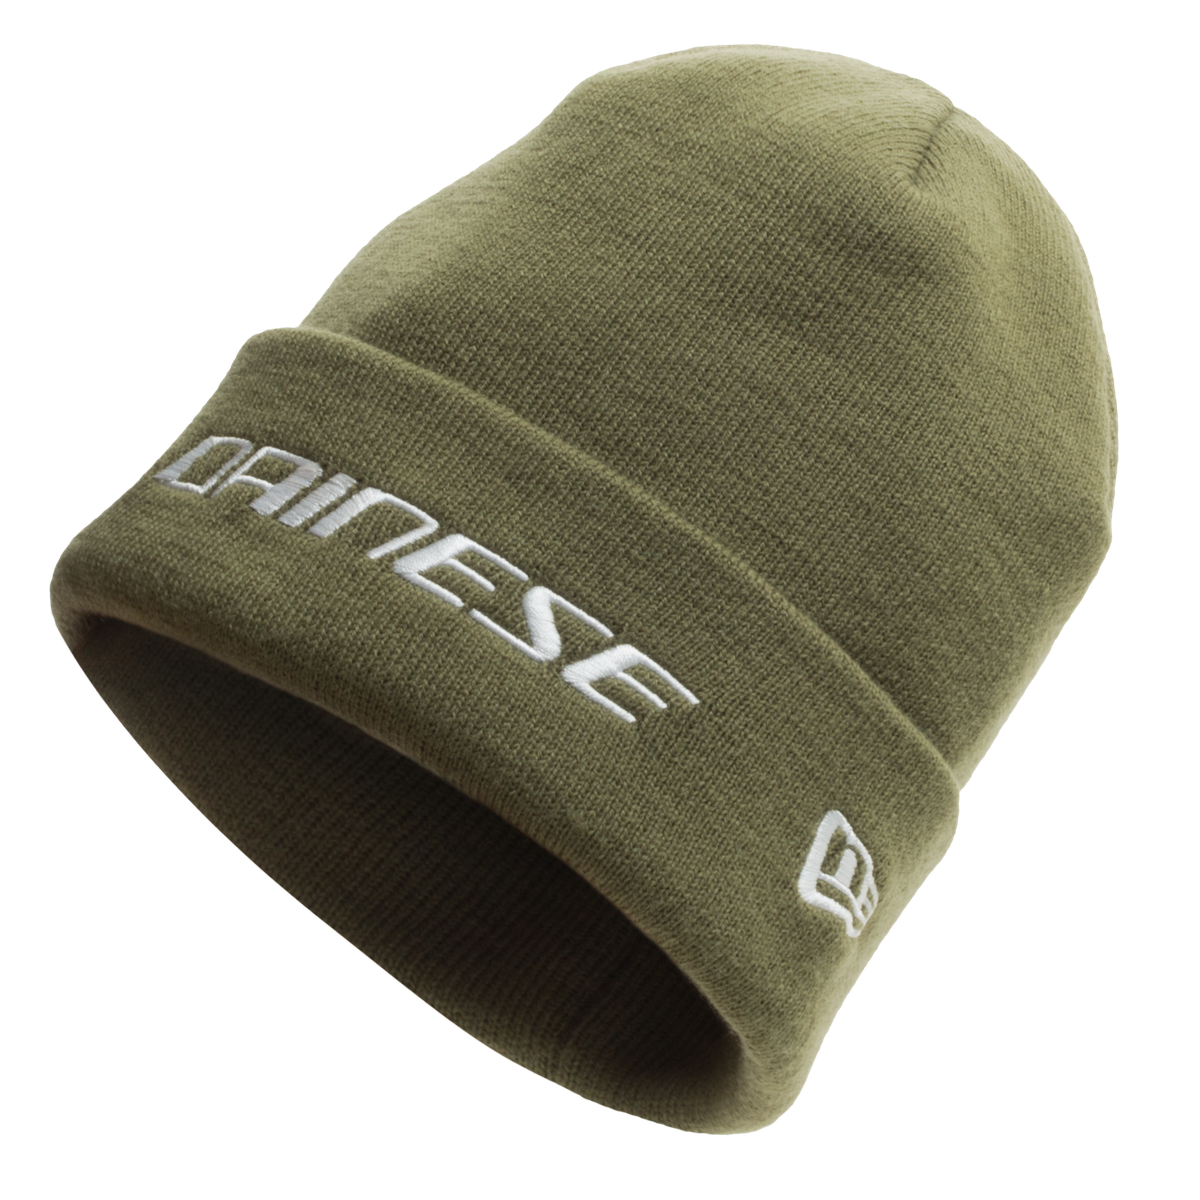 DAINESE CUFF BEANIE Dainese  Cappellino Dainese invernale